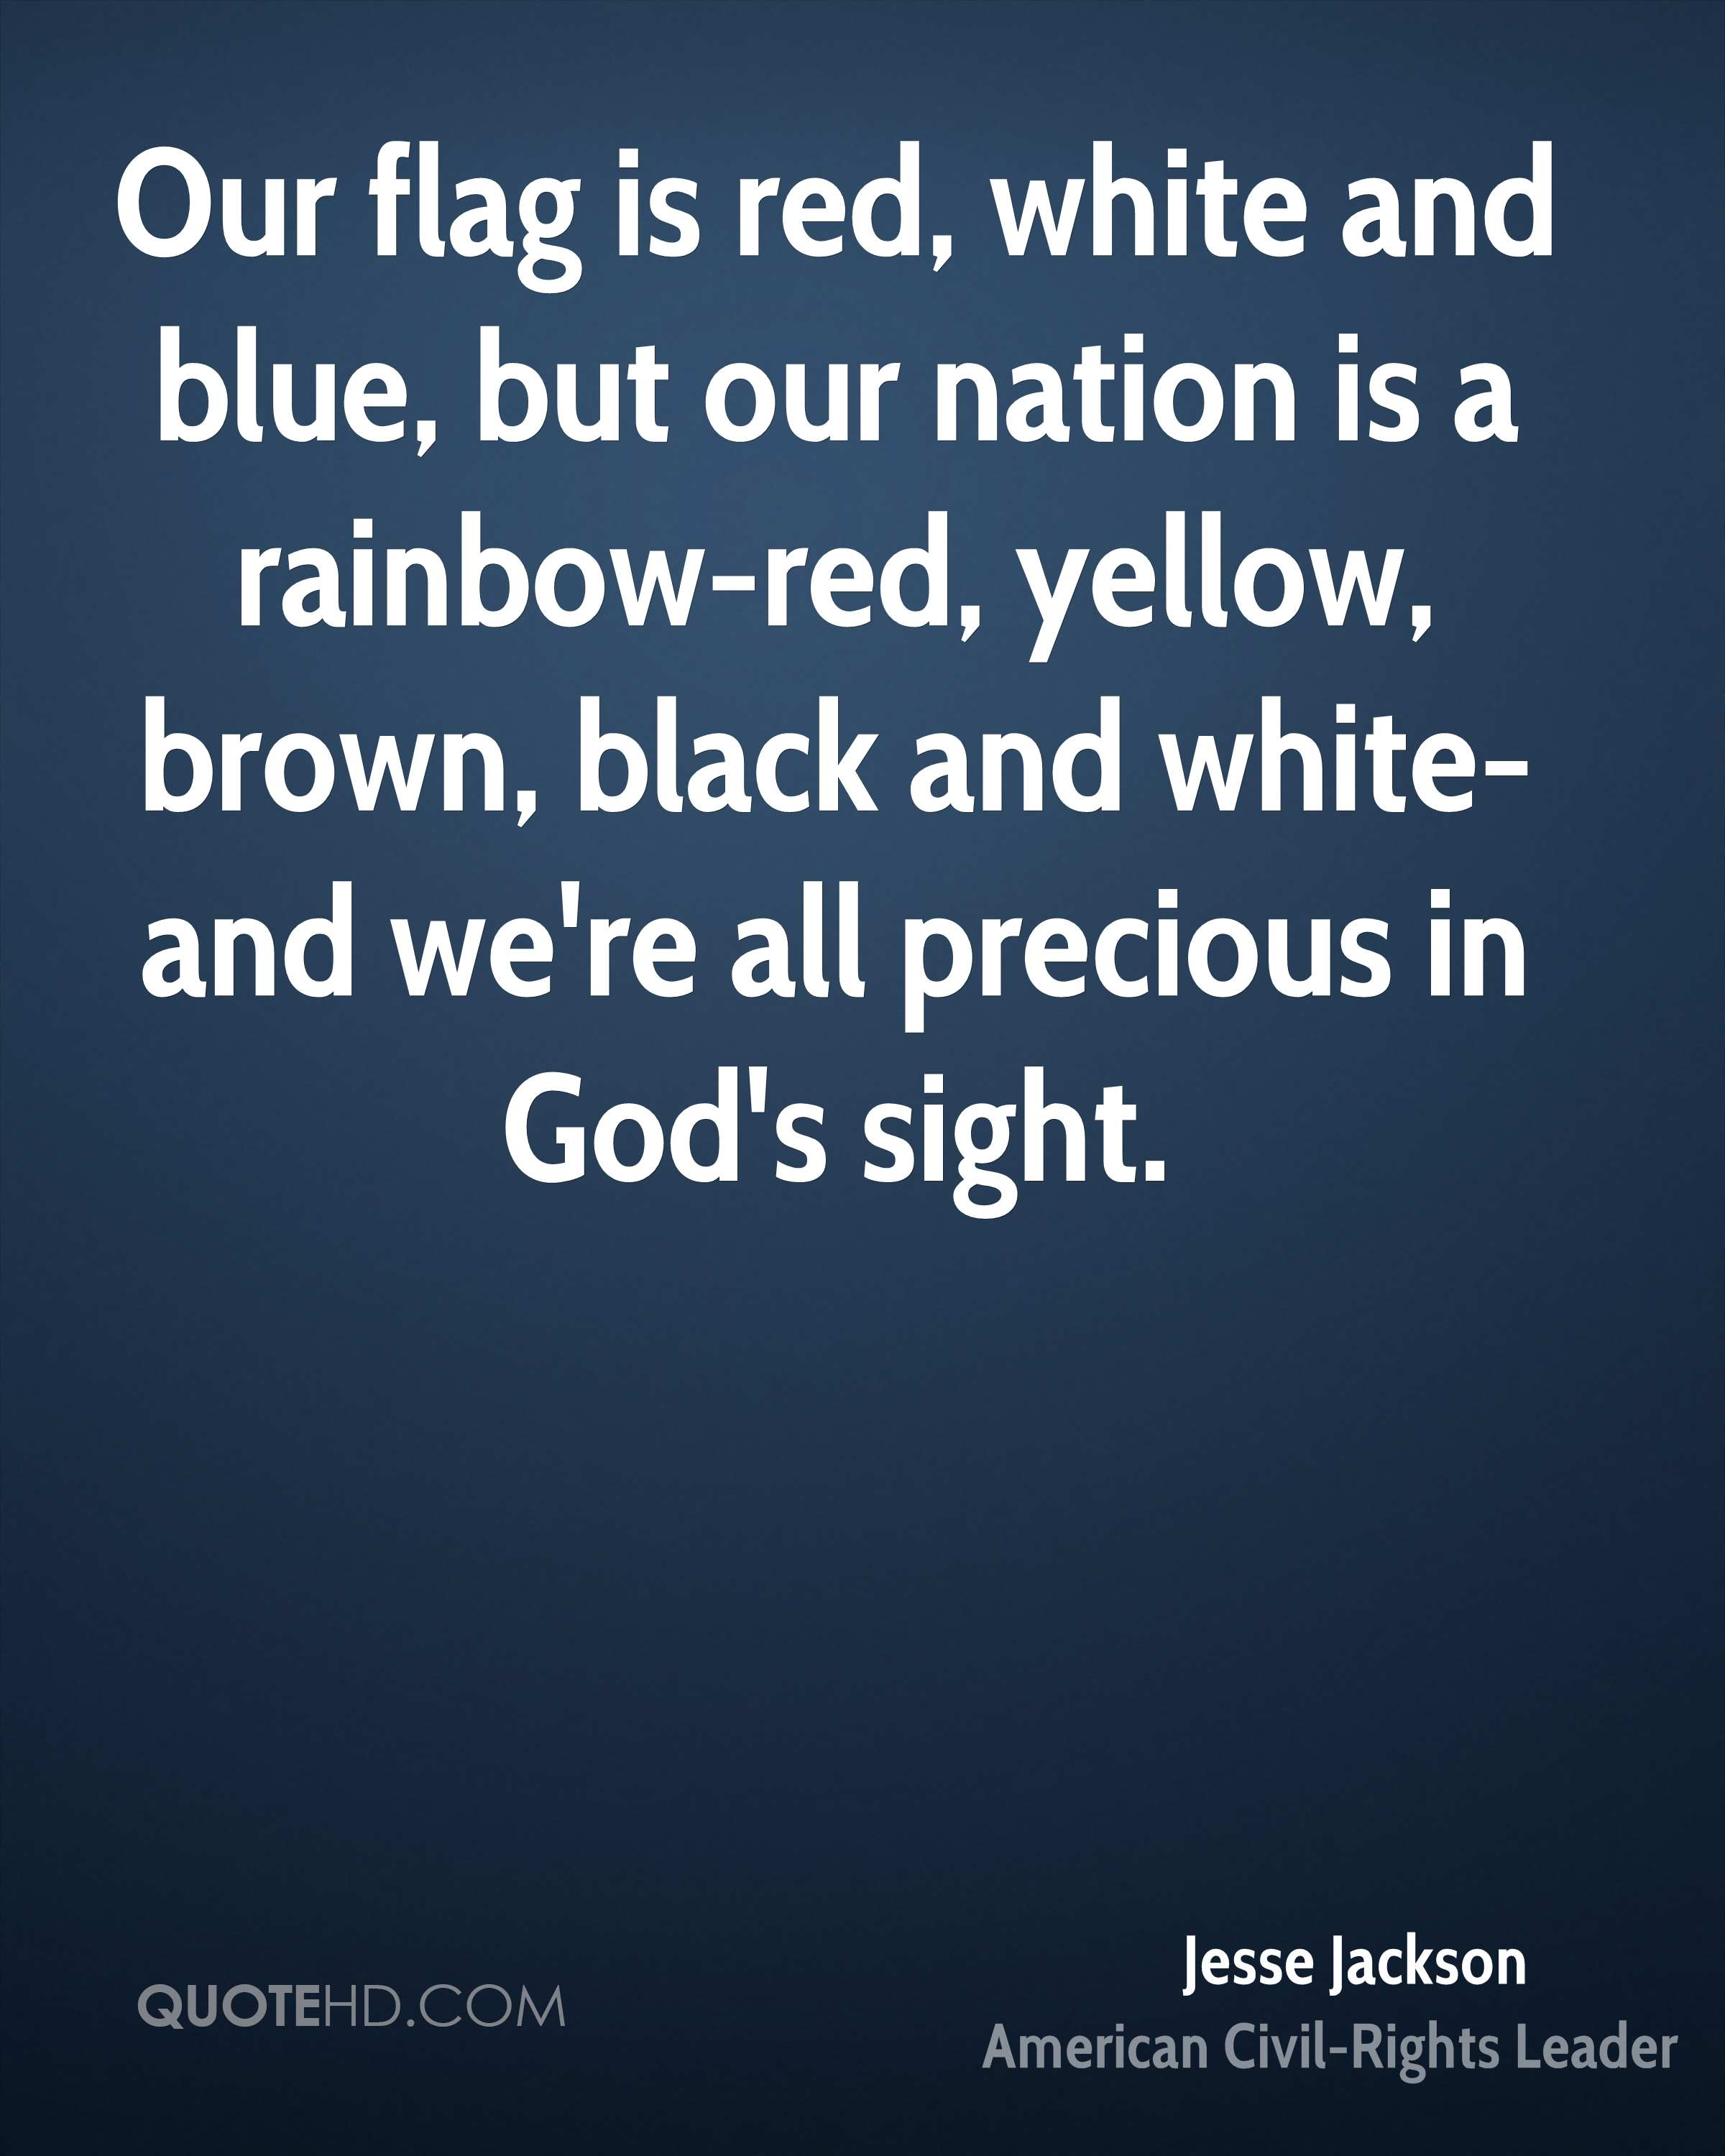 Our flag is red, white and blue, but our nation is a rainbow-red, yellow, brown, black and white-and we're all precious in God's sight.